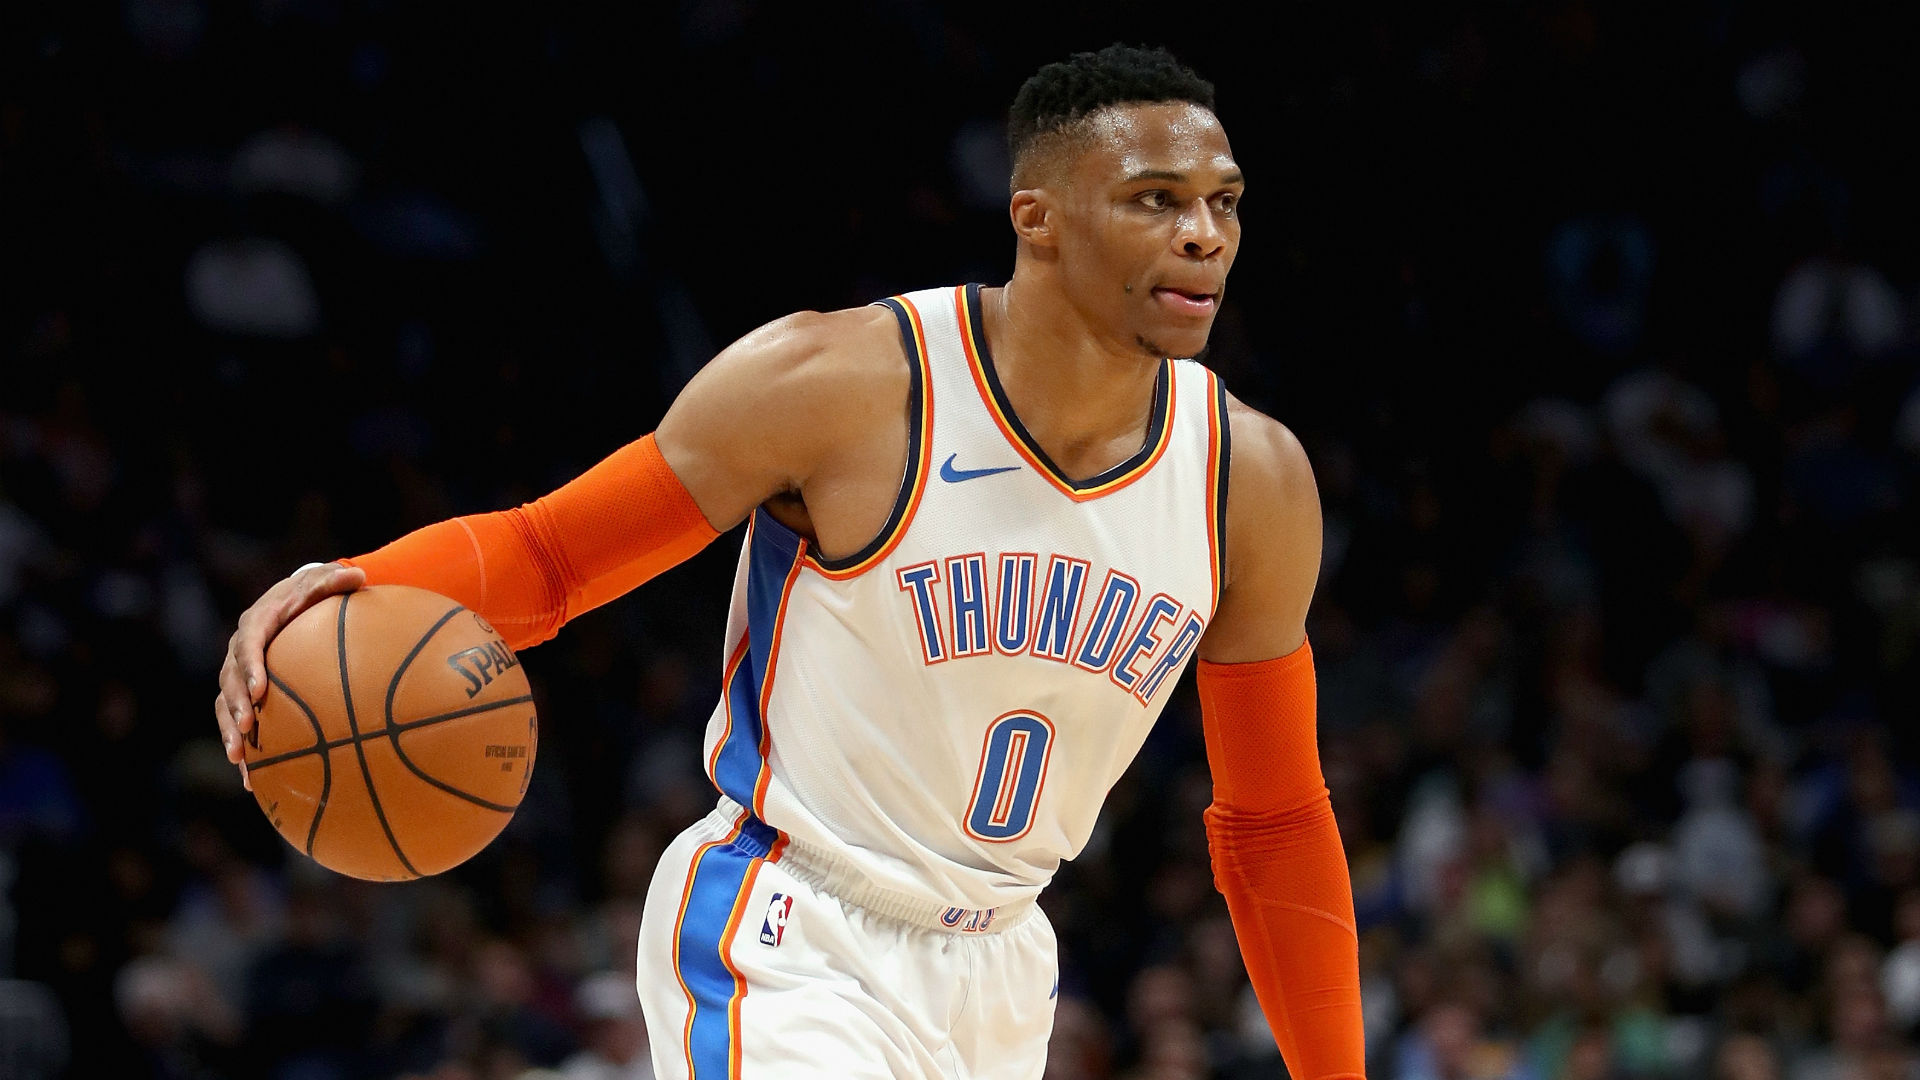 'I don't really care what people say' – Westbrook on criticism